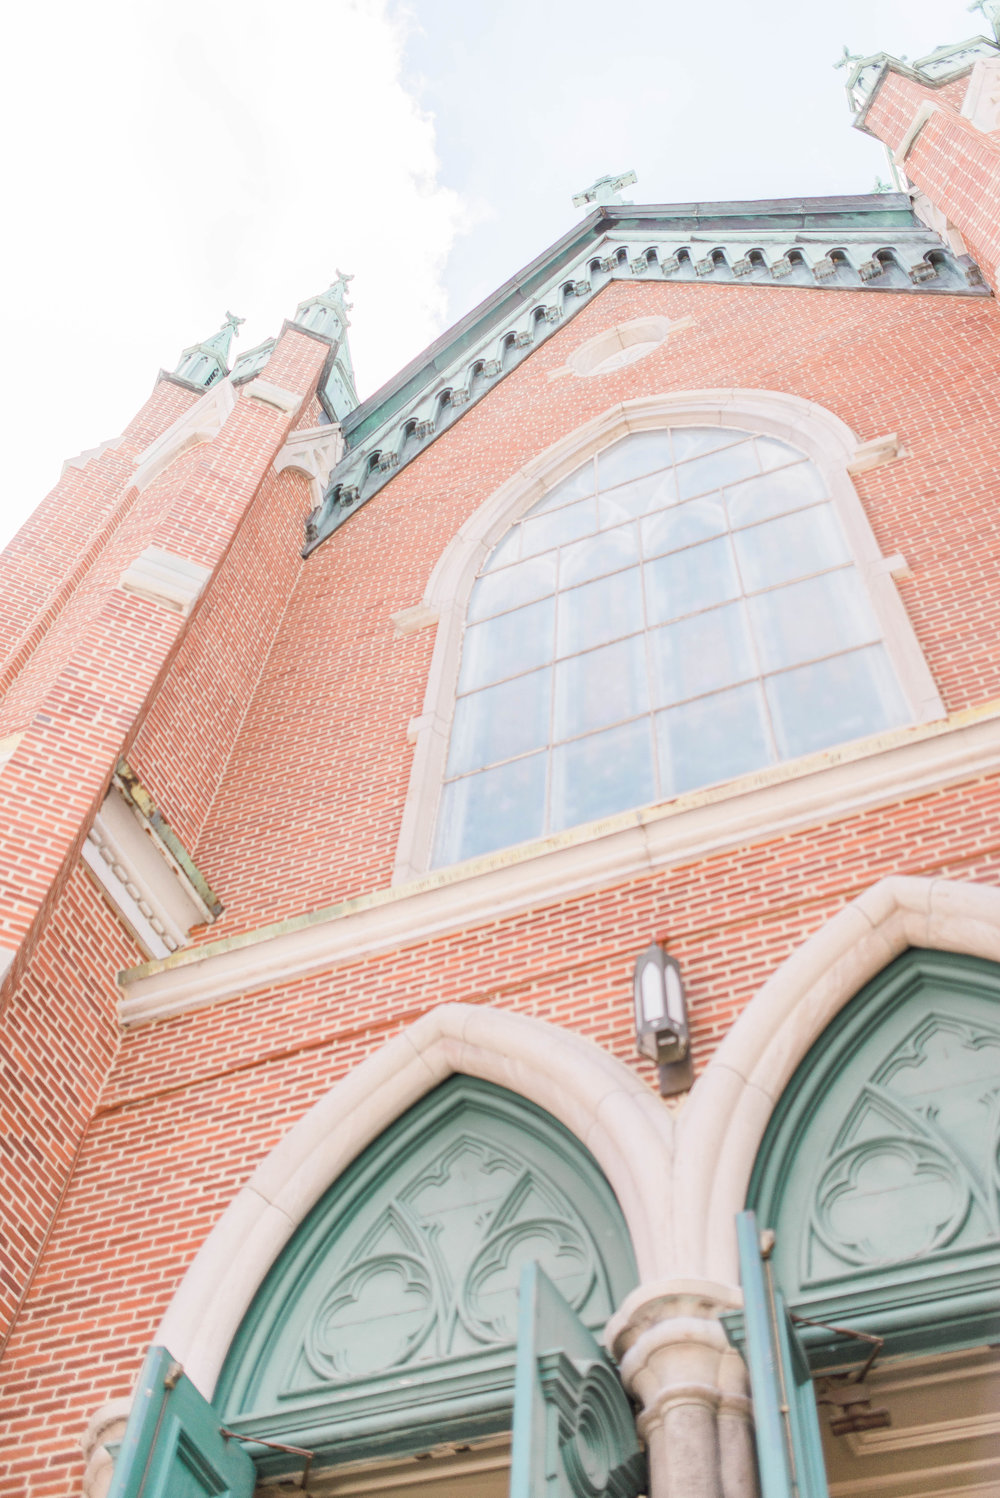 Fine Art Destination Wedding Photographer based in Indianapolis, IN